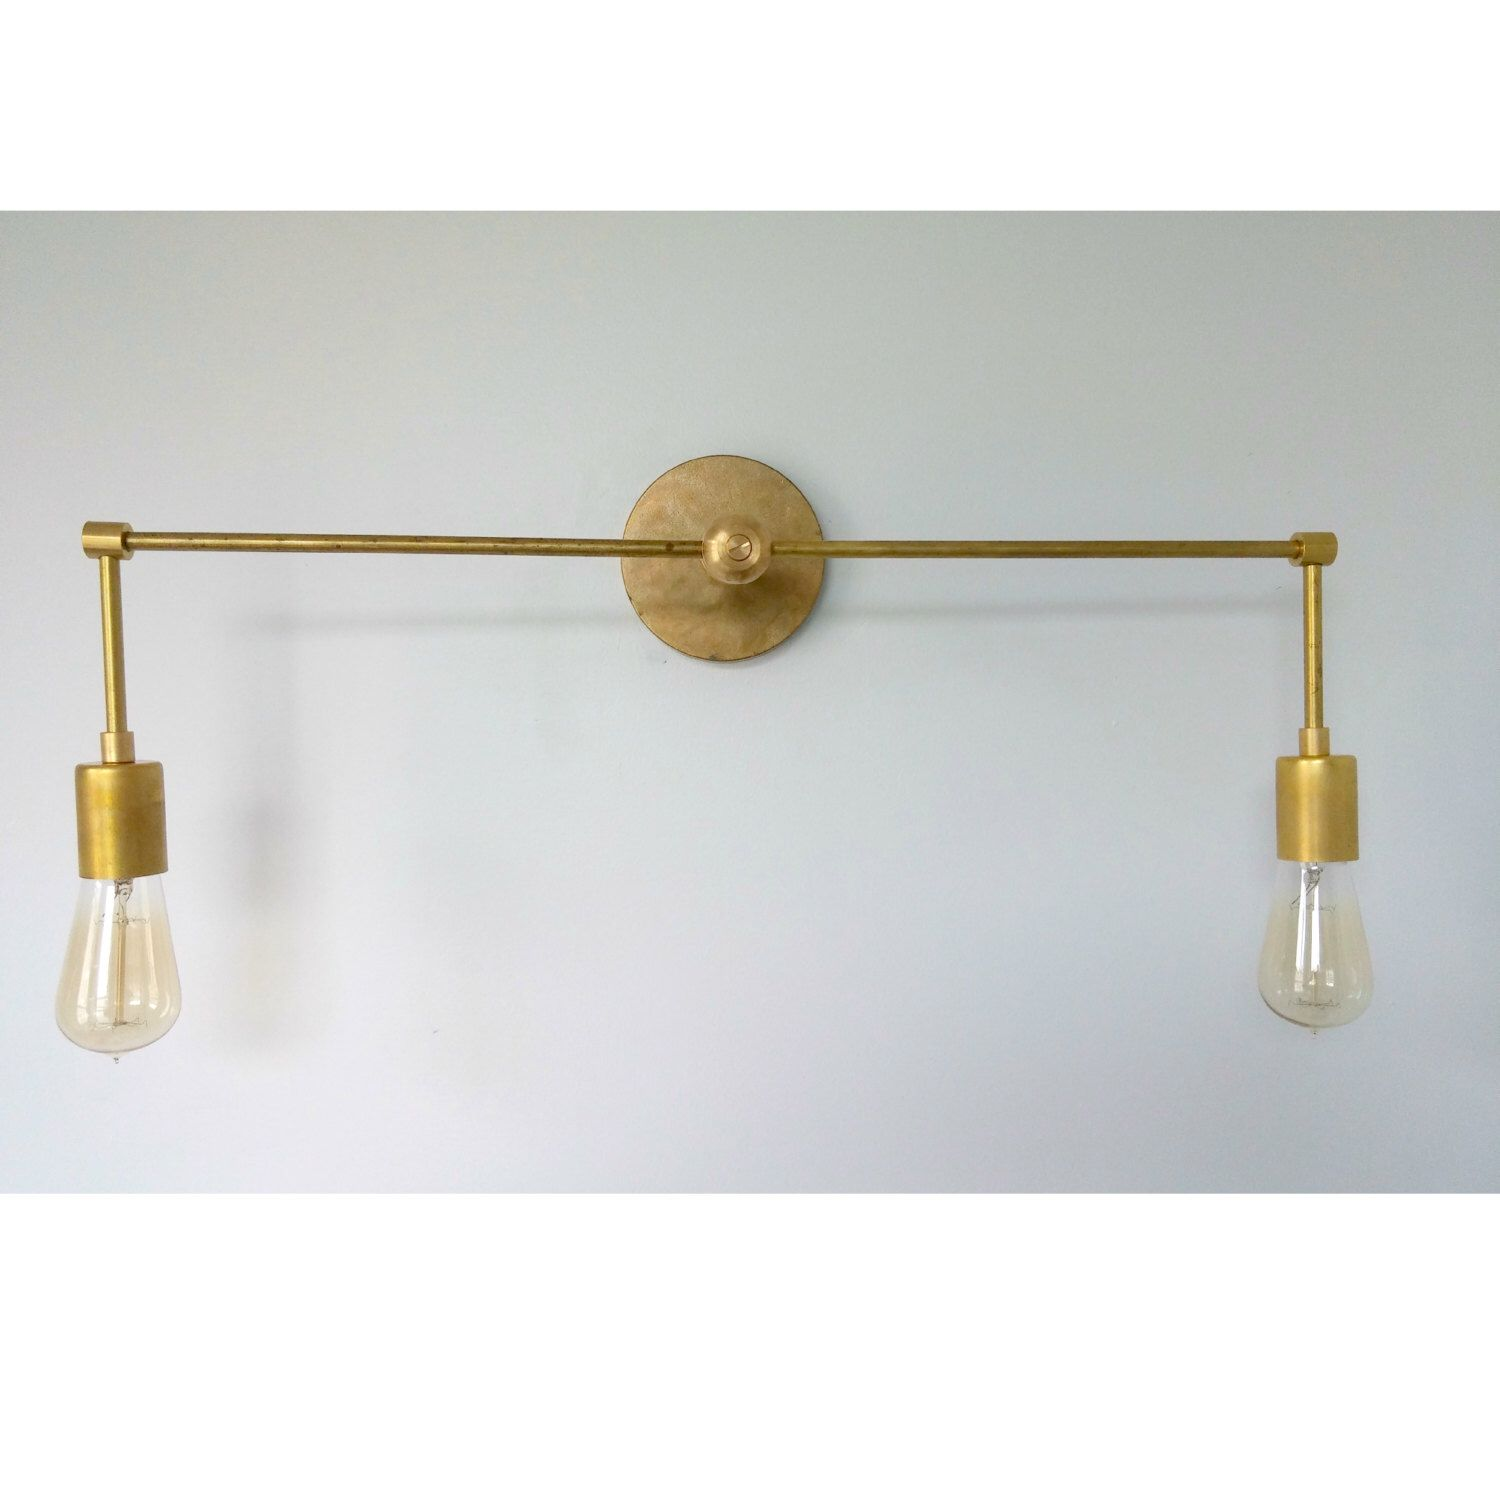 The Magazine Double Sconce   Double Light Sconce   Brass Sconce   Brass Bathroom  Light